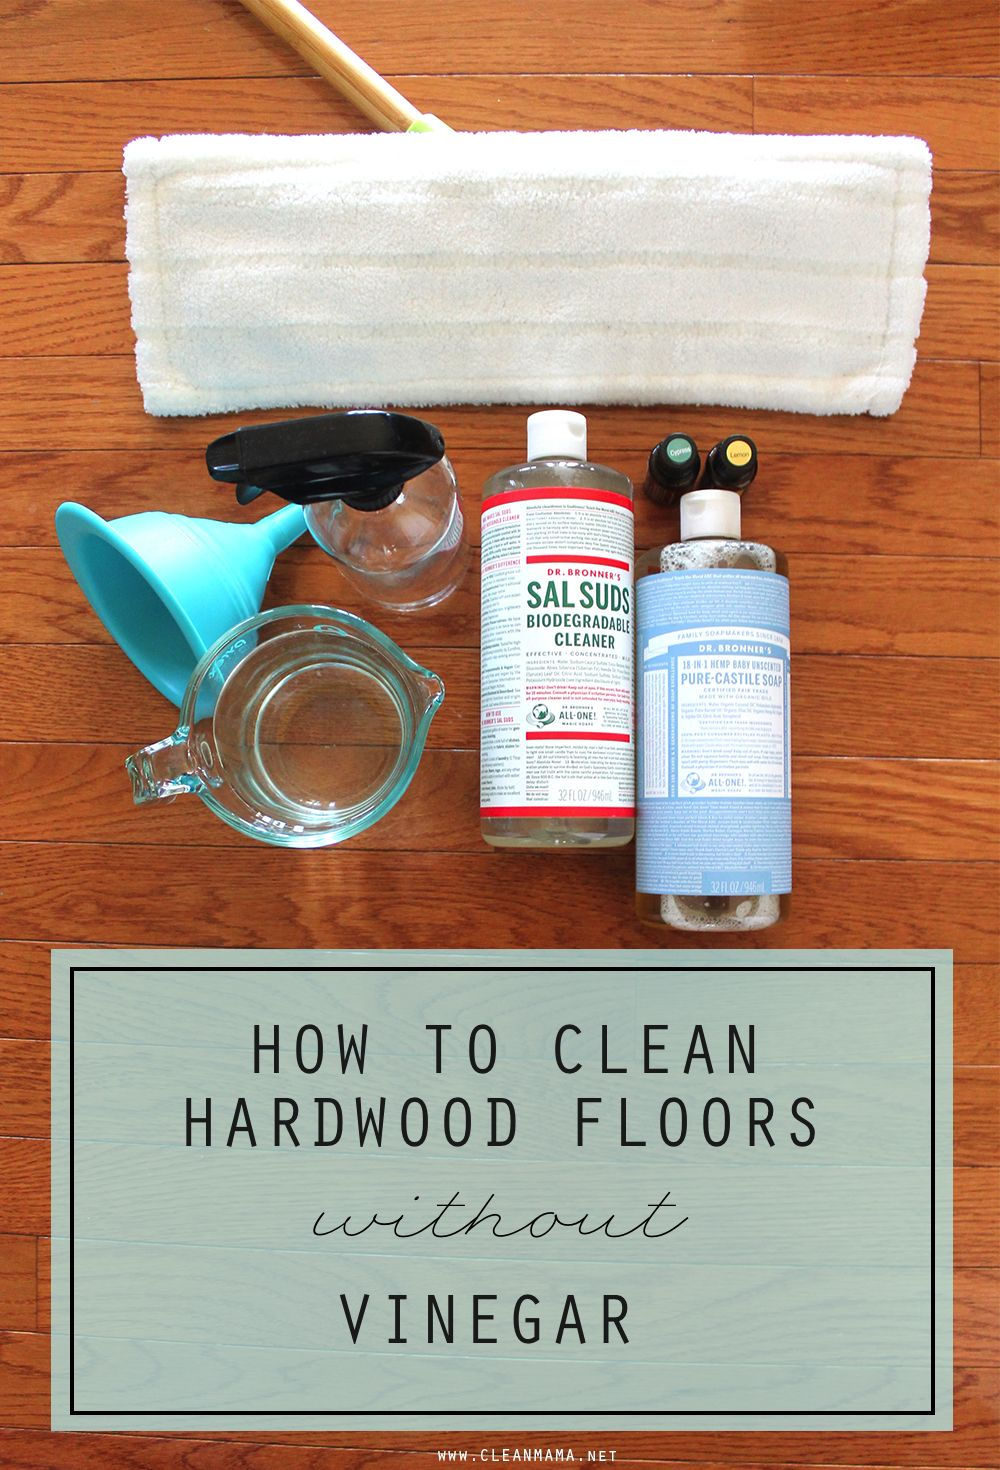 How to clean hardwood floors without vinegar vinegar white how to clean hardwood floors without vinegar doublecrazyfo Images